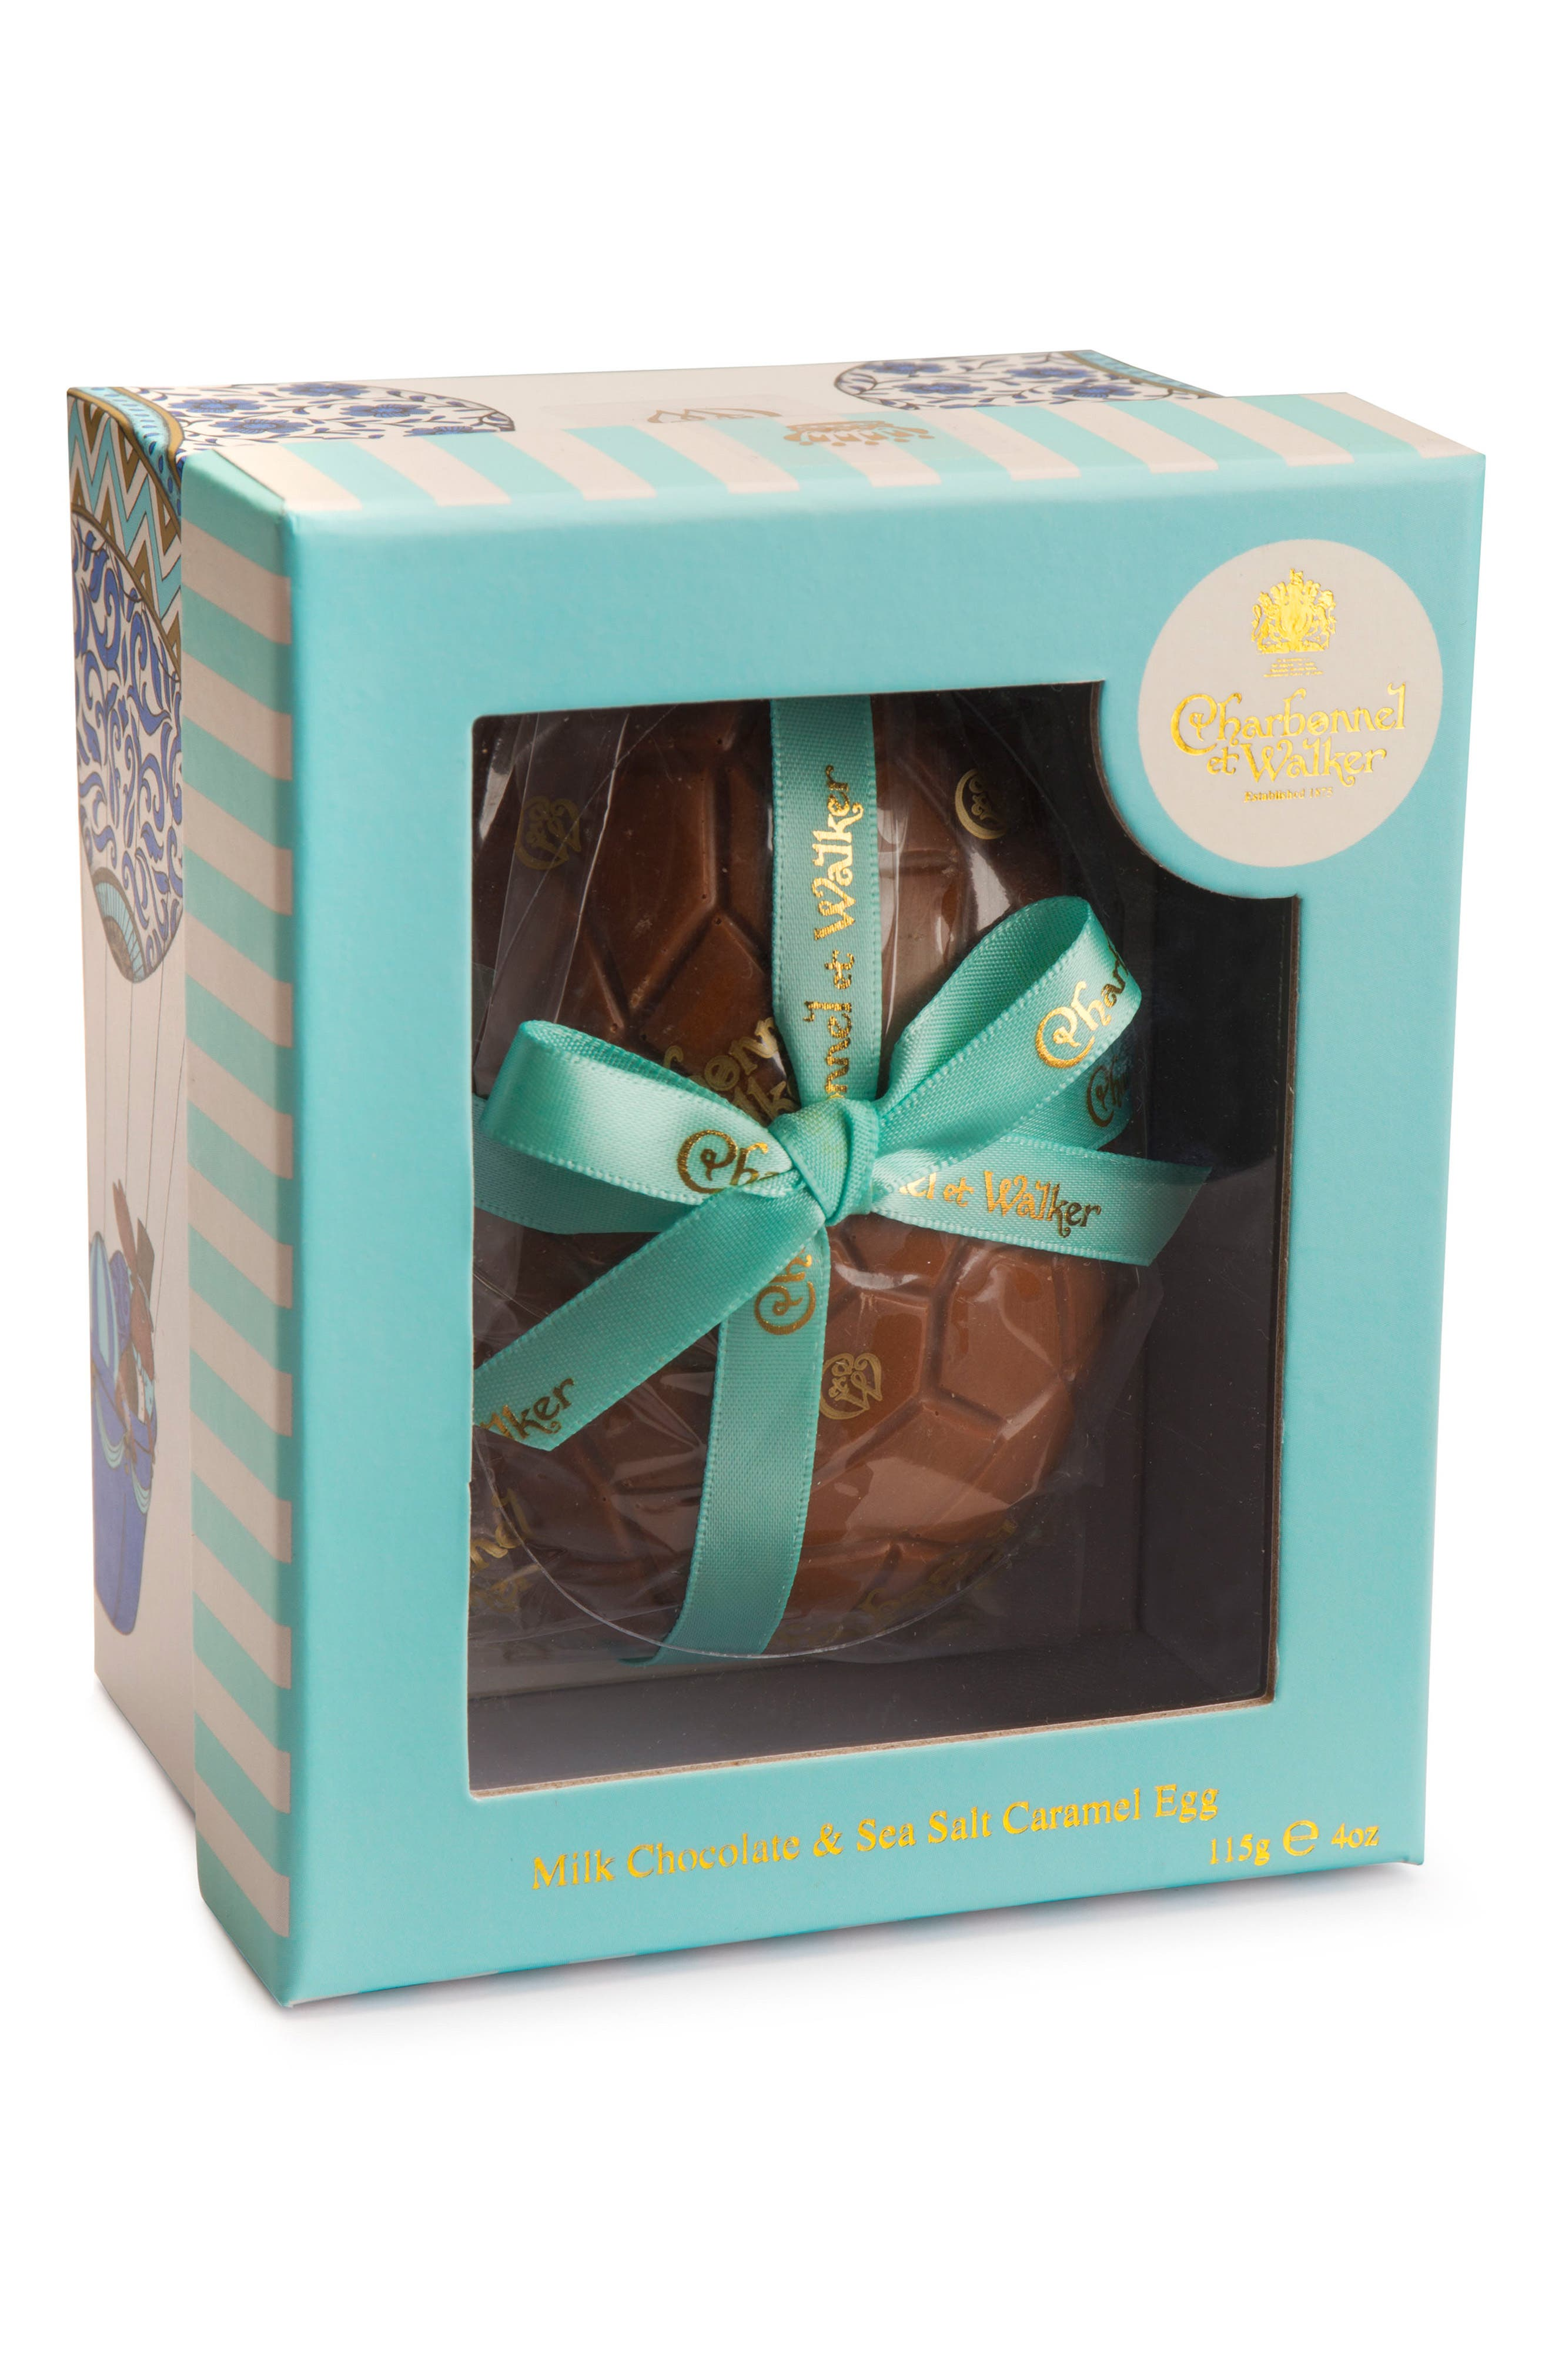 Flavored Truffles & Chocolate Egg in Gift Box,                         Main,                         color, 400